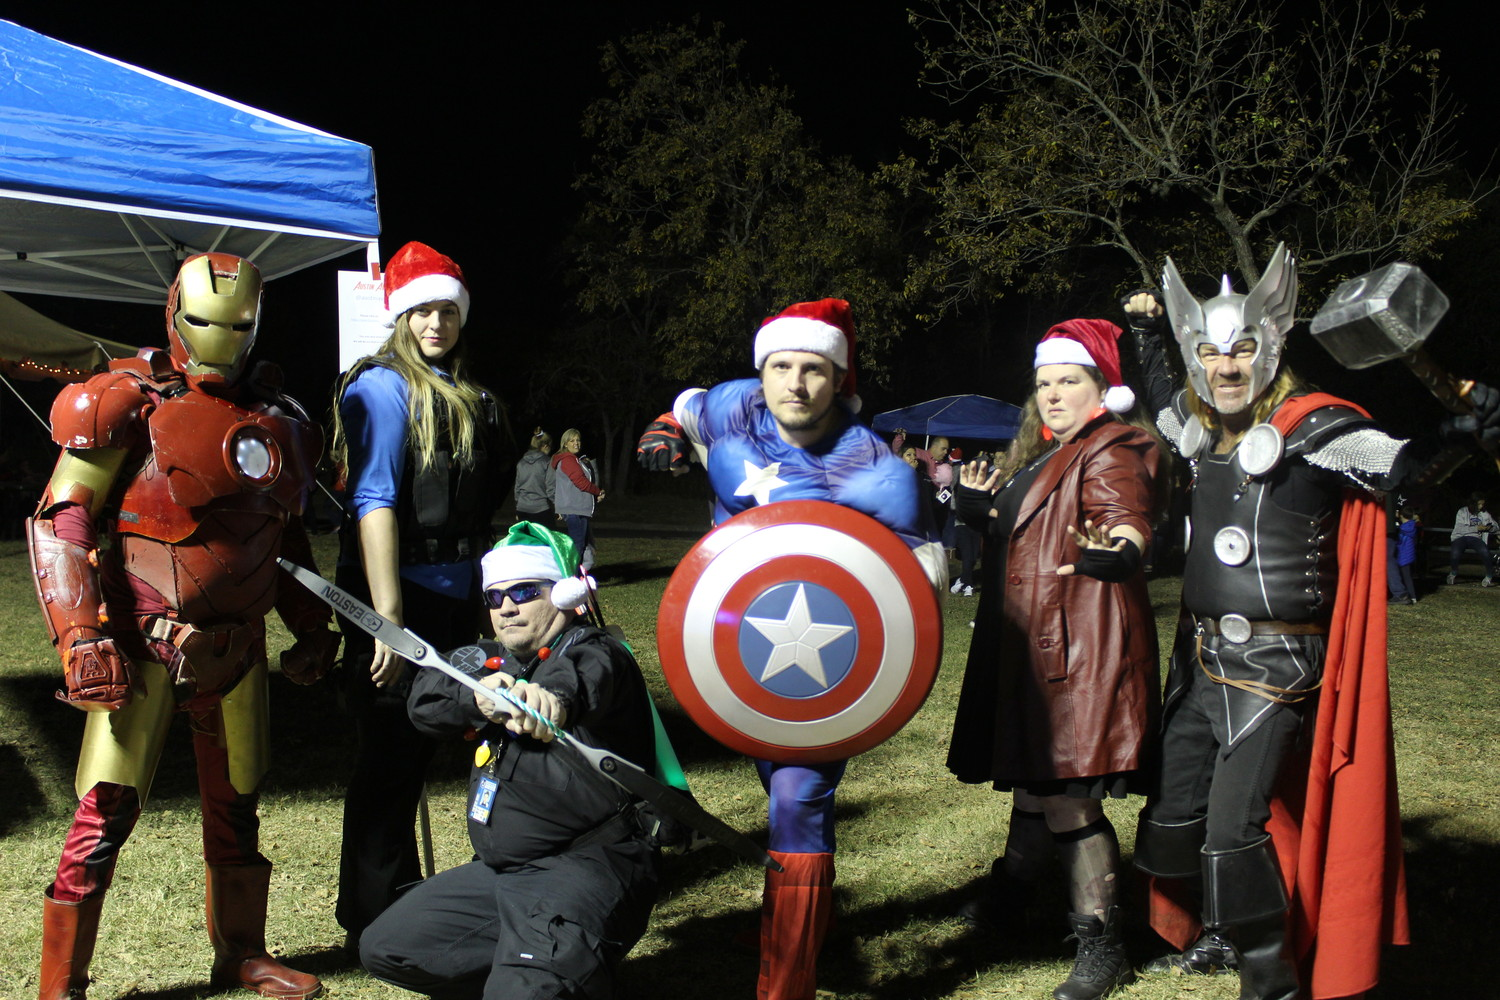 The Austin Avengers strike a pose at the Cedar Park Tree Lighting and Santa's workshop, Dec. 1.